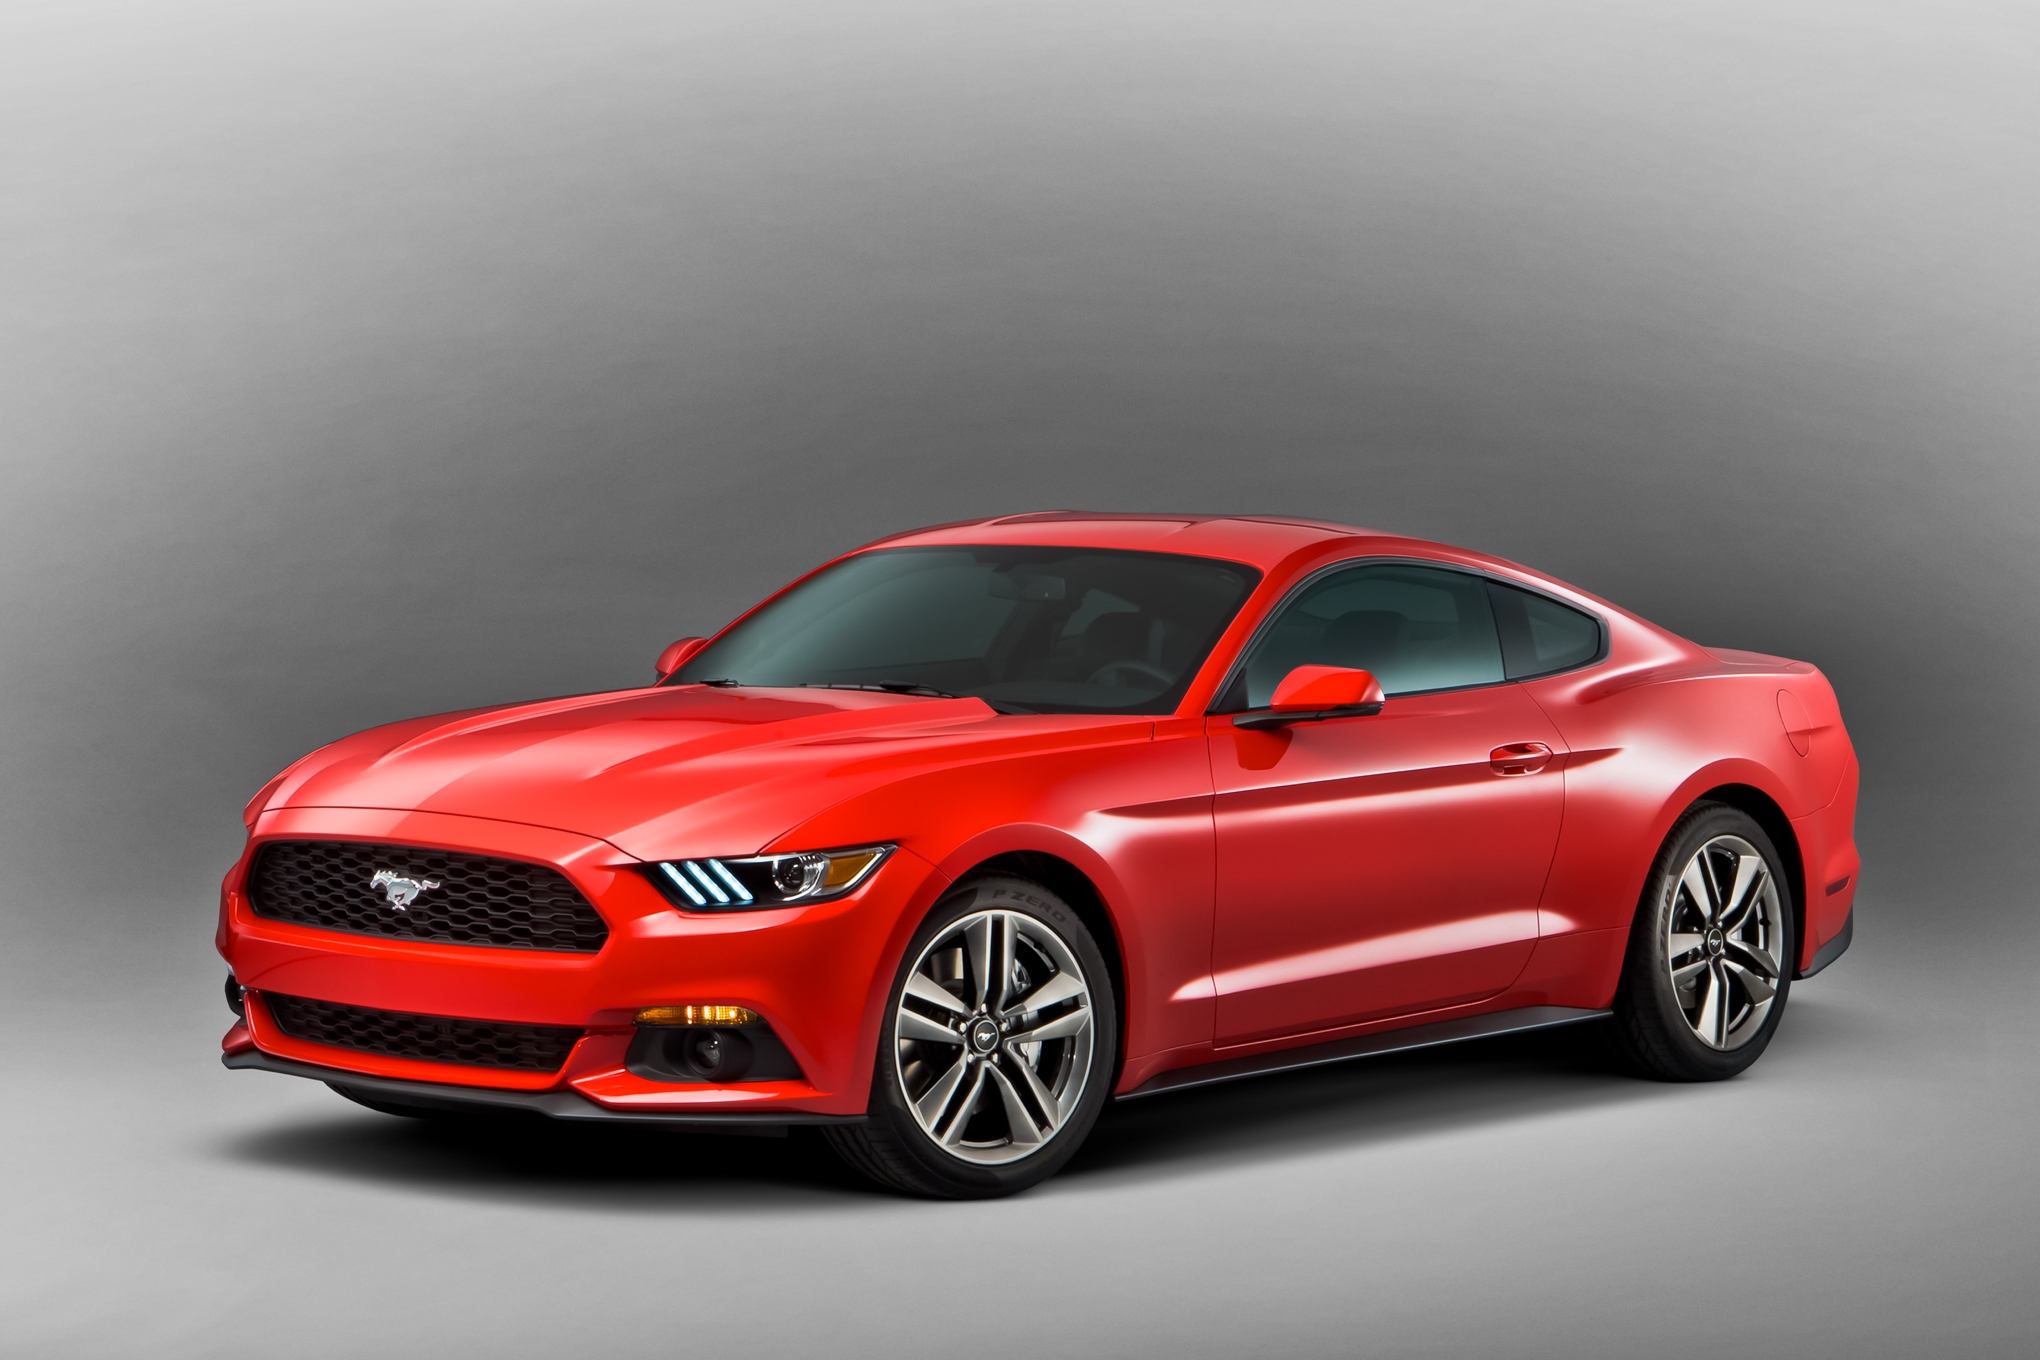 2015 ford mustang neuwagen verkauf import information. Black Bedroom Furniture Sets. Home Design Ideas